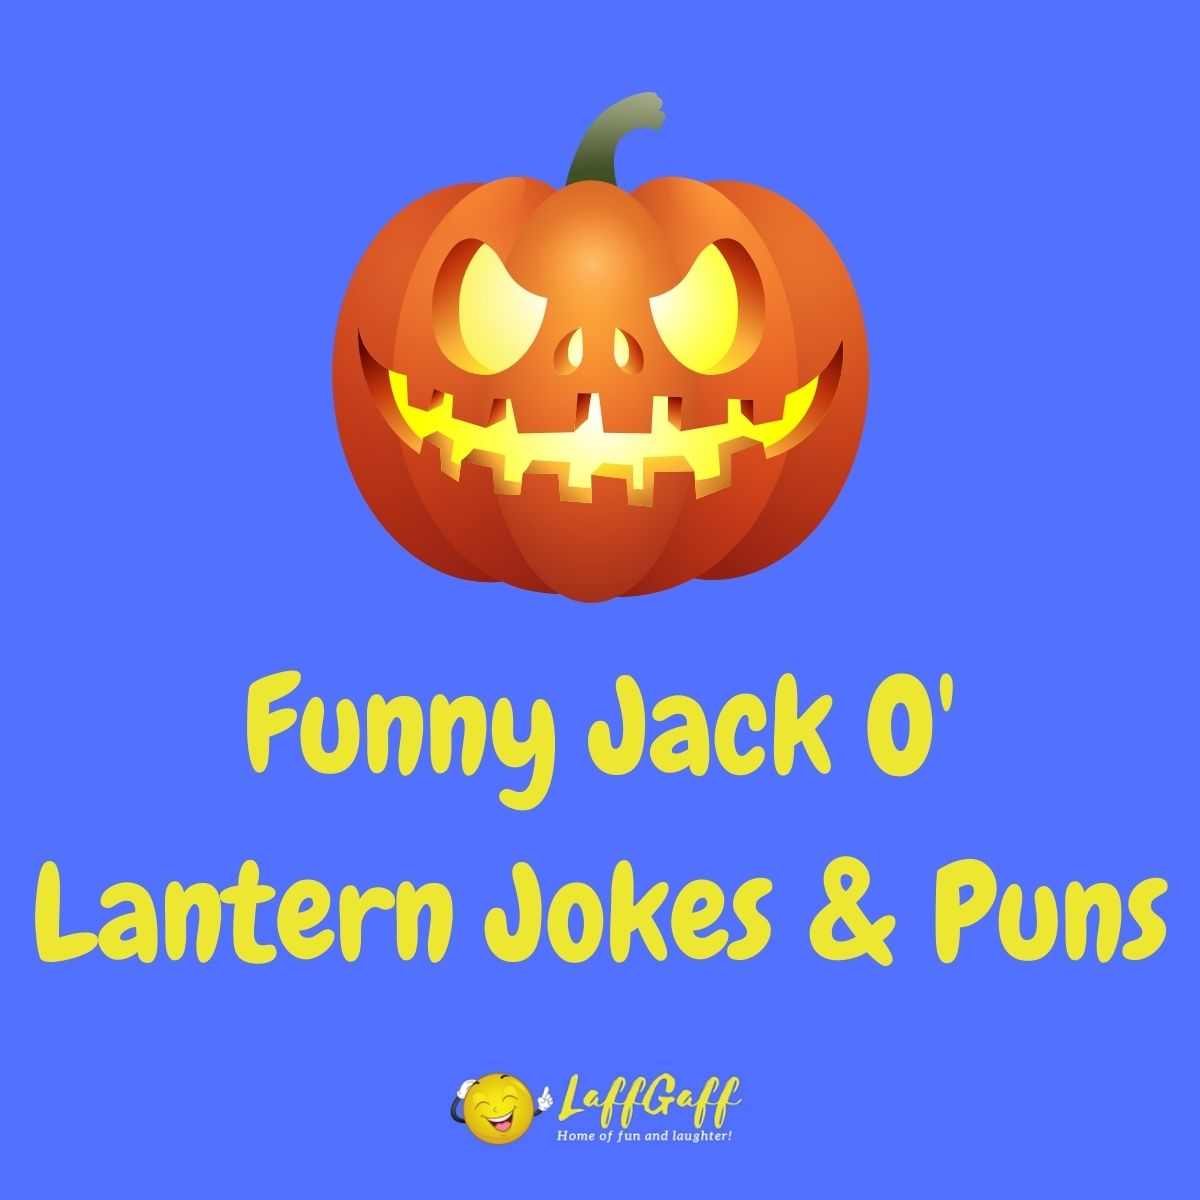 Featured image for a page of funny jack-o-lantern jokes and puns.